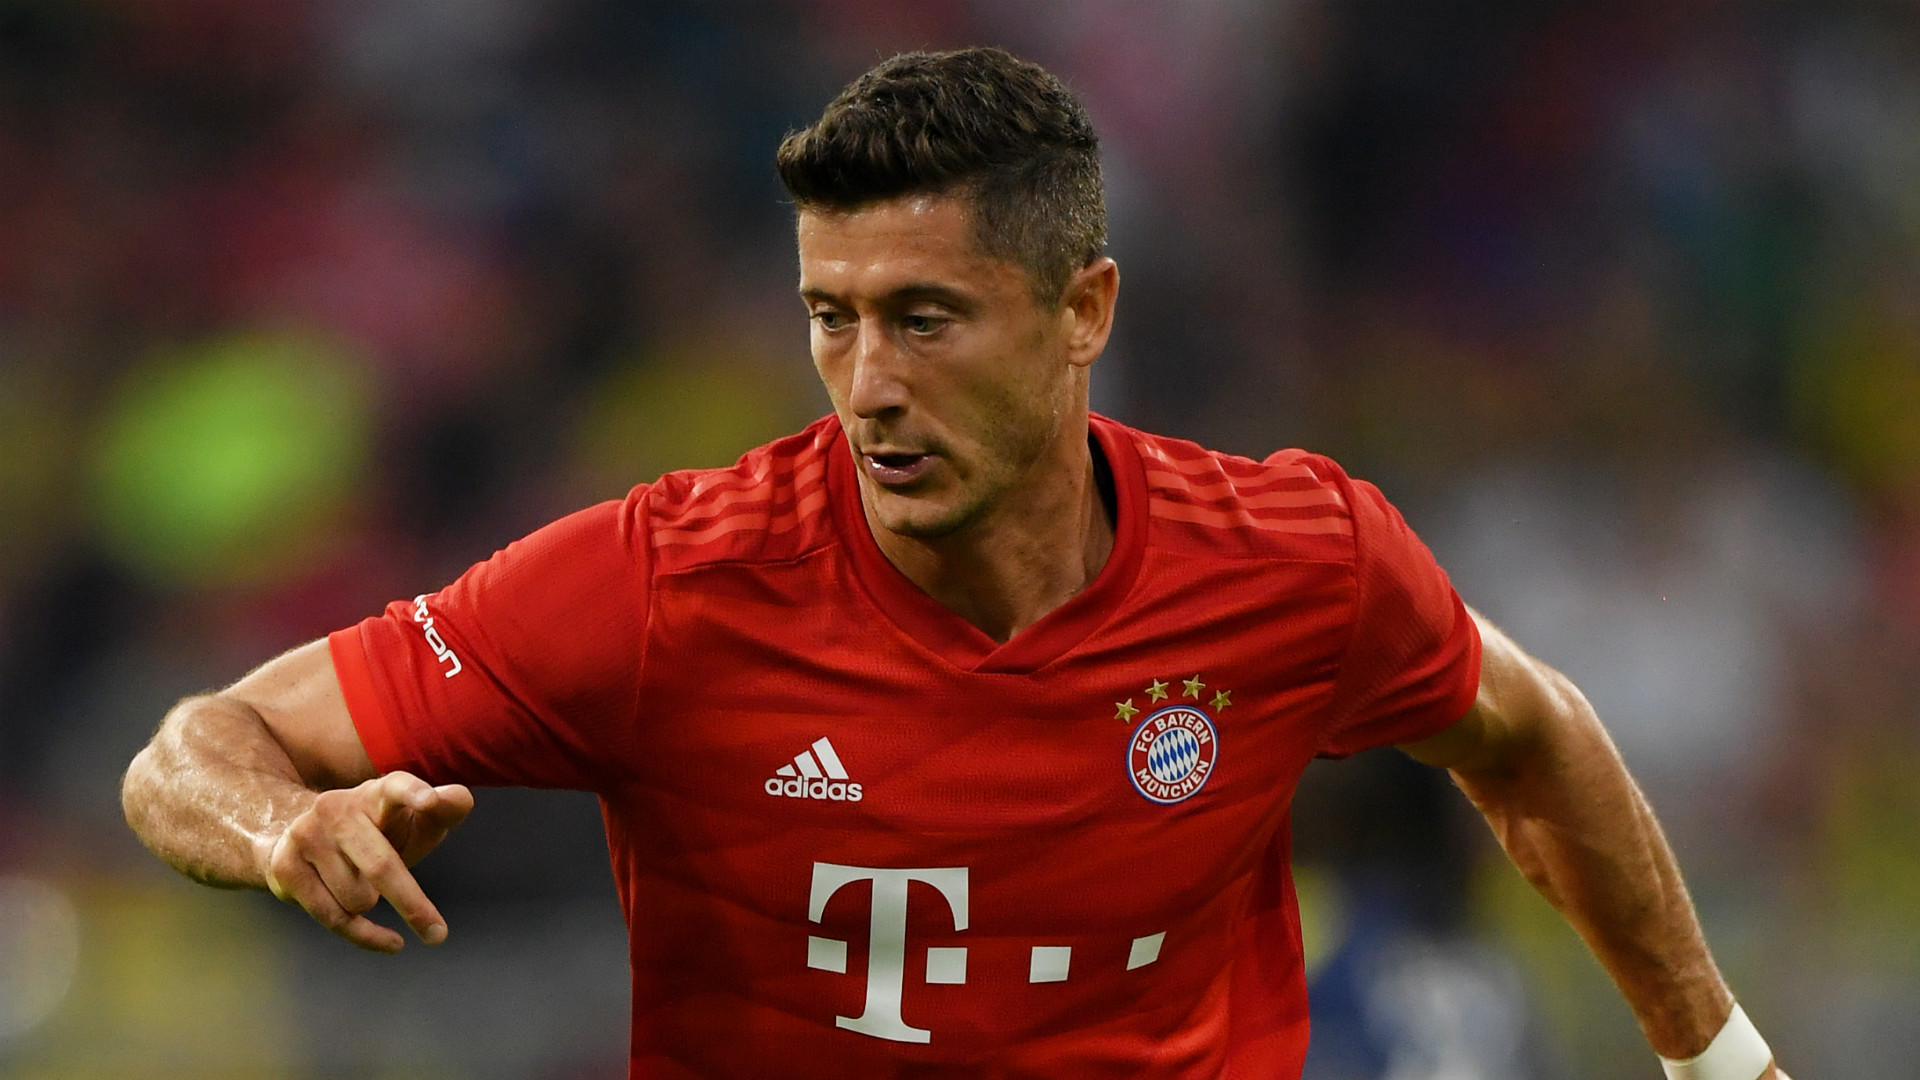 Bayern Munich - Prolongation imminente pour Robert Lewandowski ?